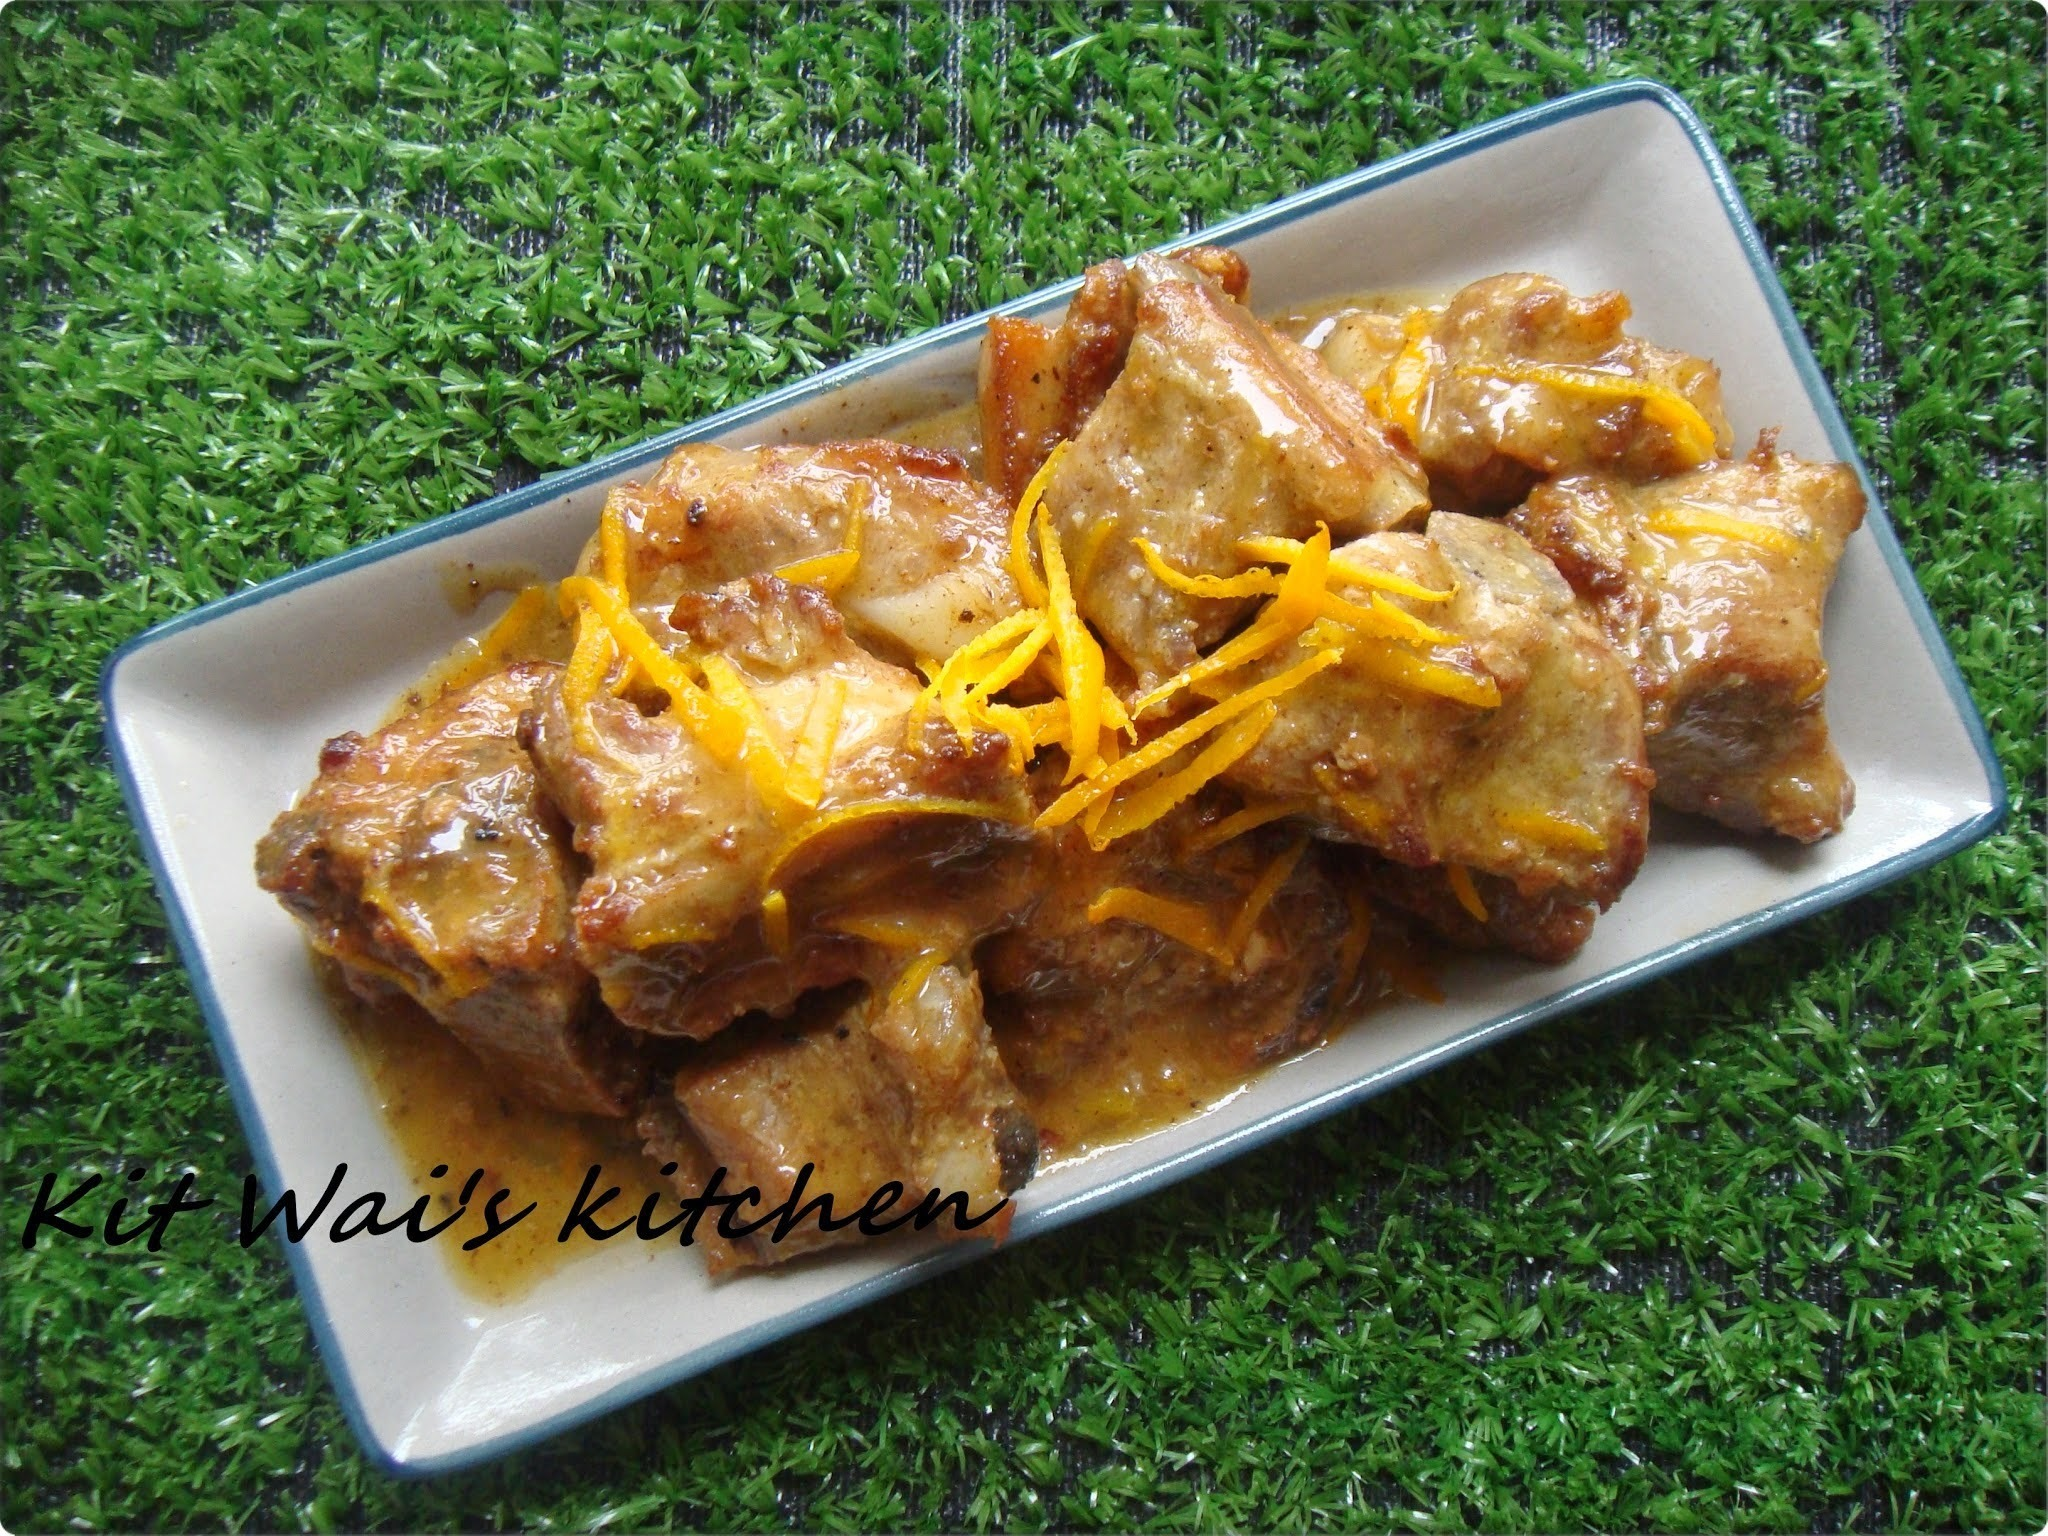 橙汁排骨 ~ Spare Ribs with Orange Sauce